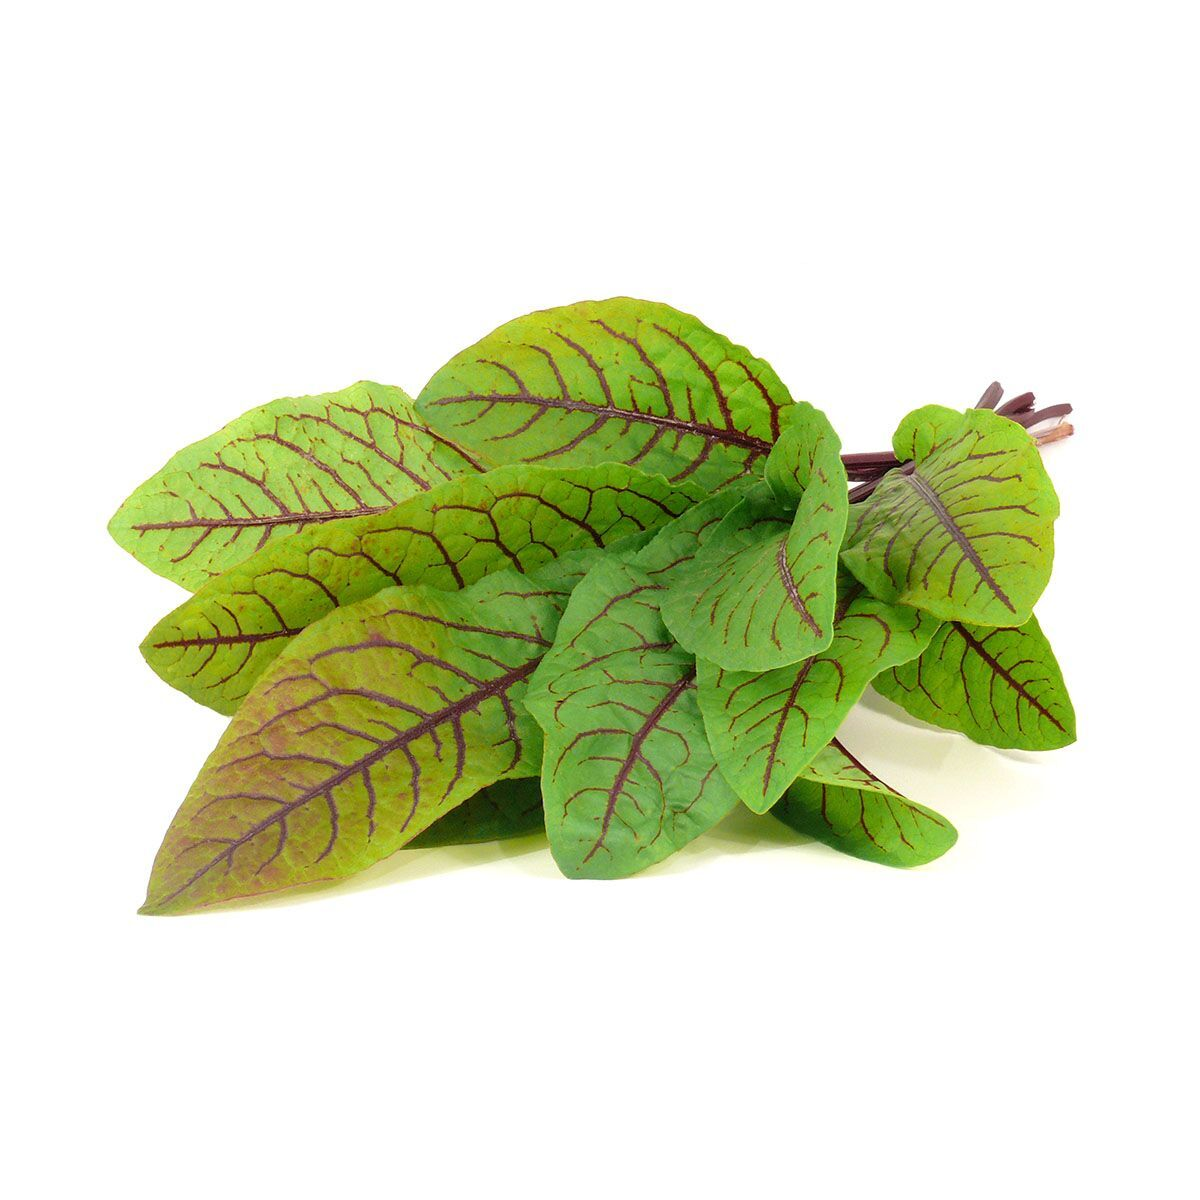 Bloody_Sorrel_plant_1200x1200_preview.jpg